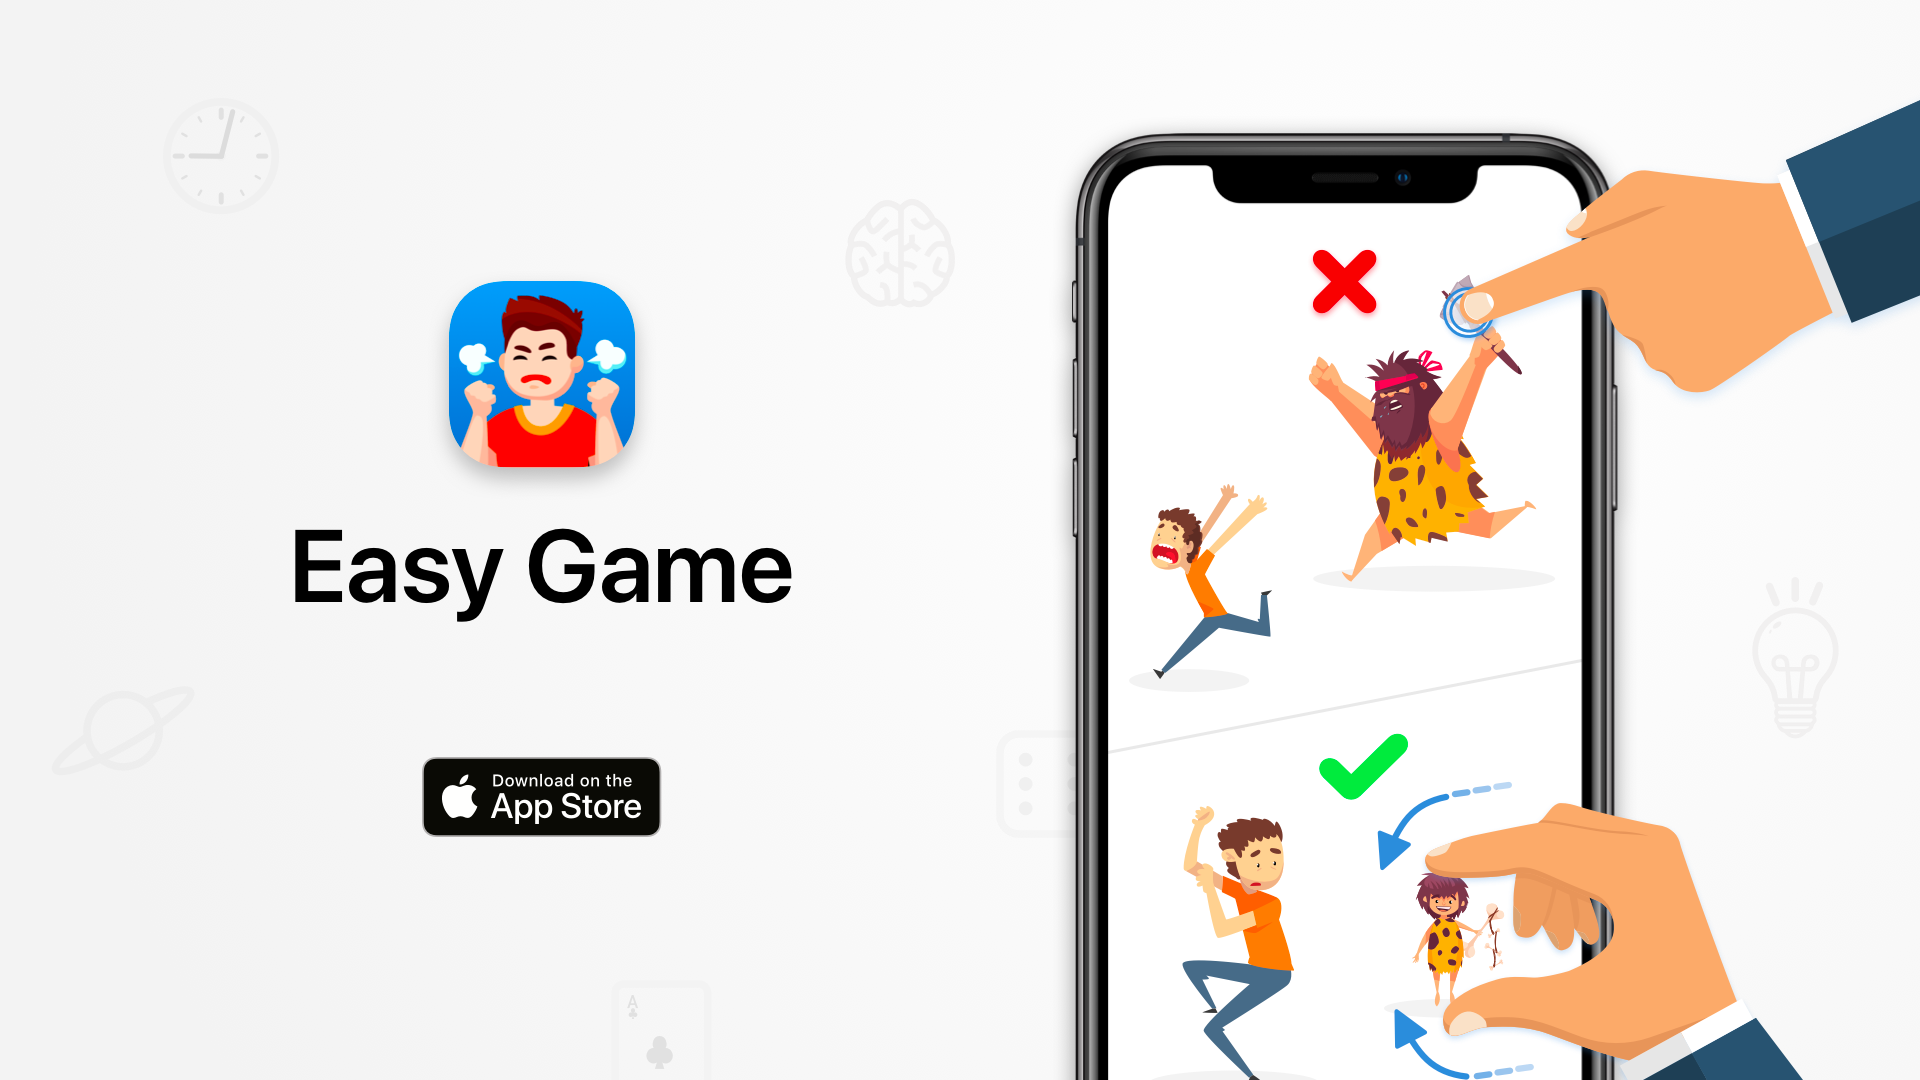 The latest game by Easybrain is now available worldwide on the App Store